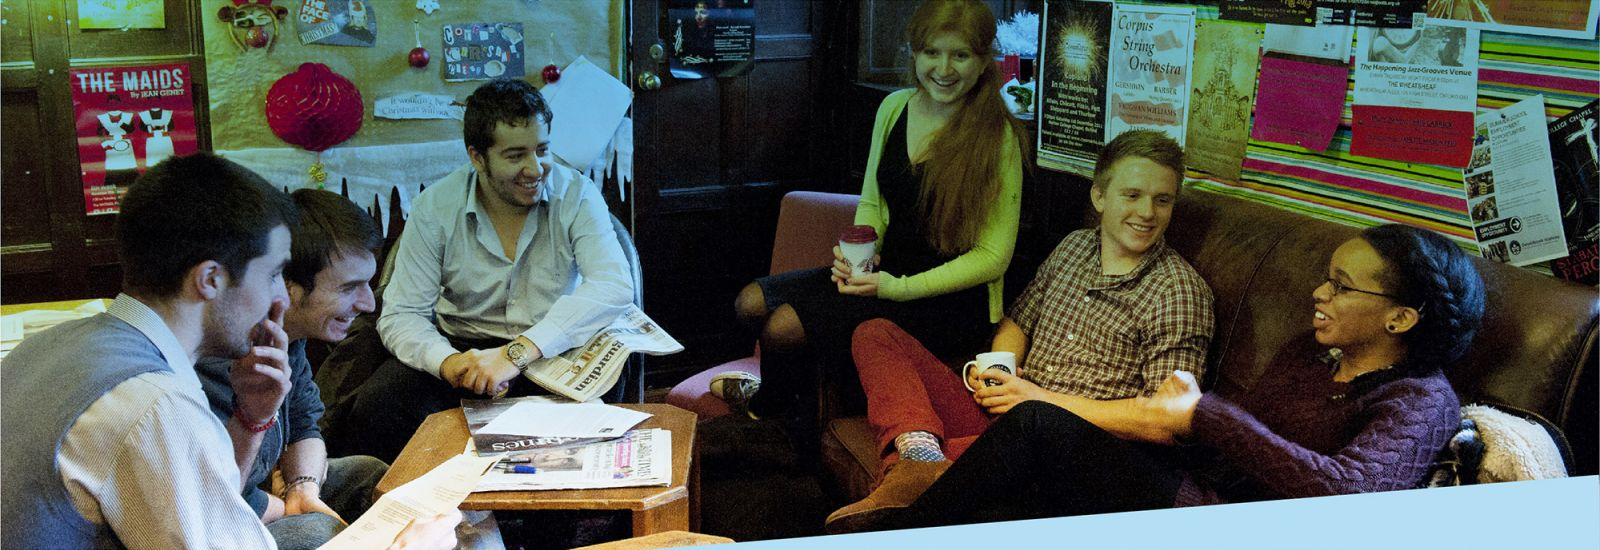 Six students sitting on sofas in a wood panelled common room surrounded by posters